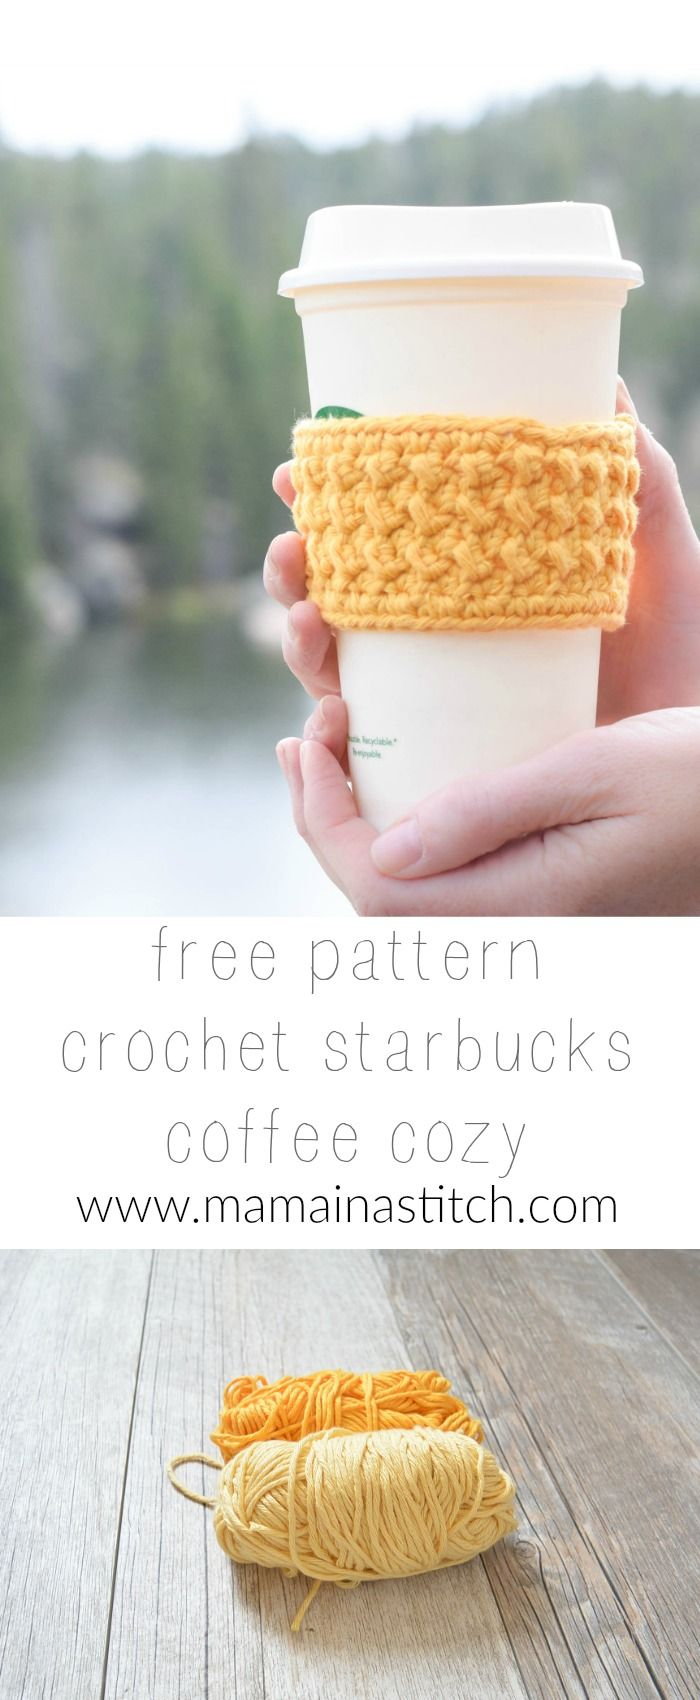 Happiest Starbucks Coffee Cup Cozy, environmentally friendly and ...